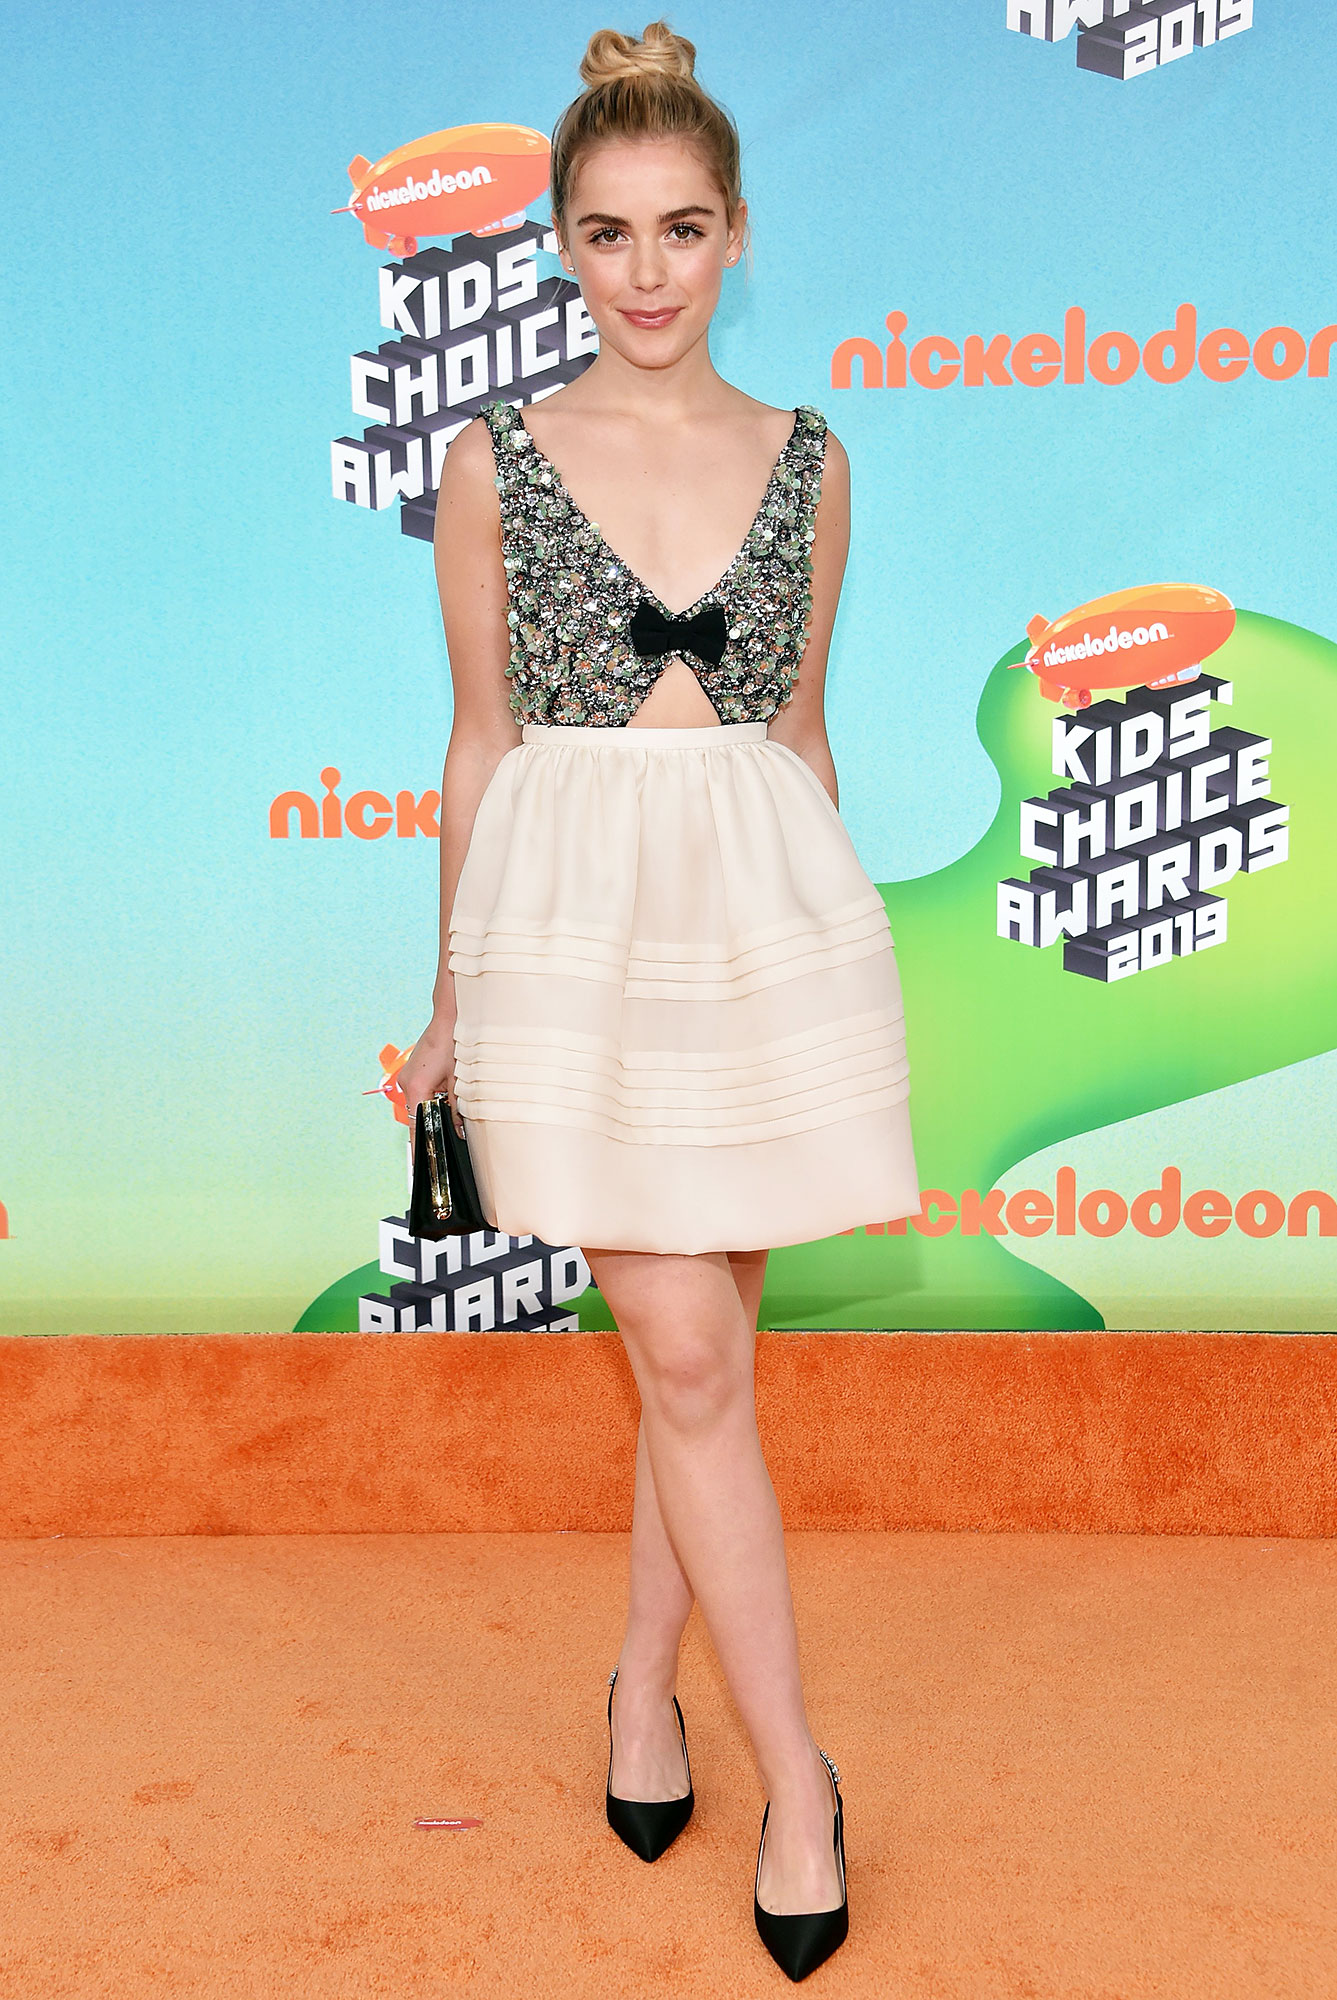 a5937ec6 Kids' Choice Awards 2019: Celeb Style, Fashion